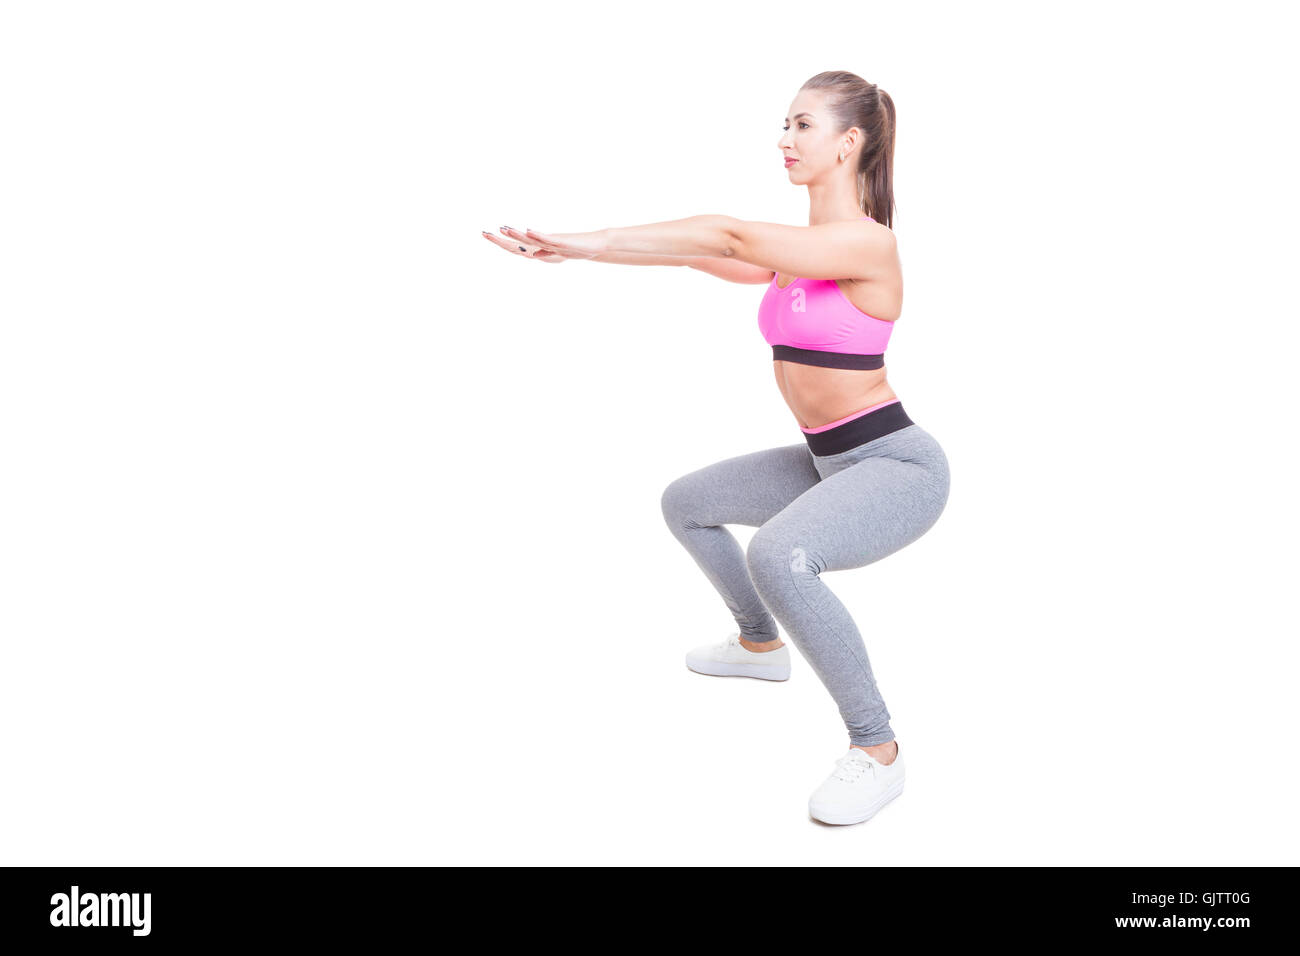 Fit girl working out doing squats with hands up isolated on white background with copy text space - Stock Image